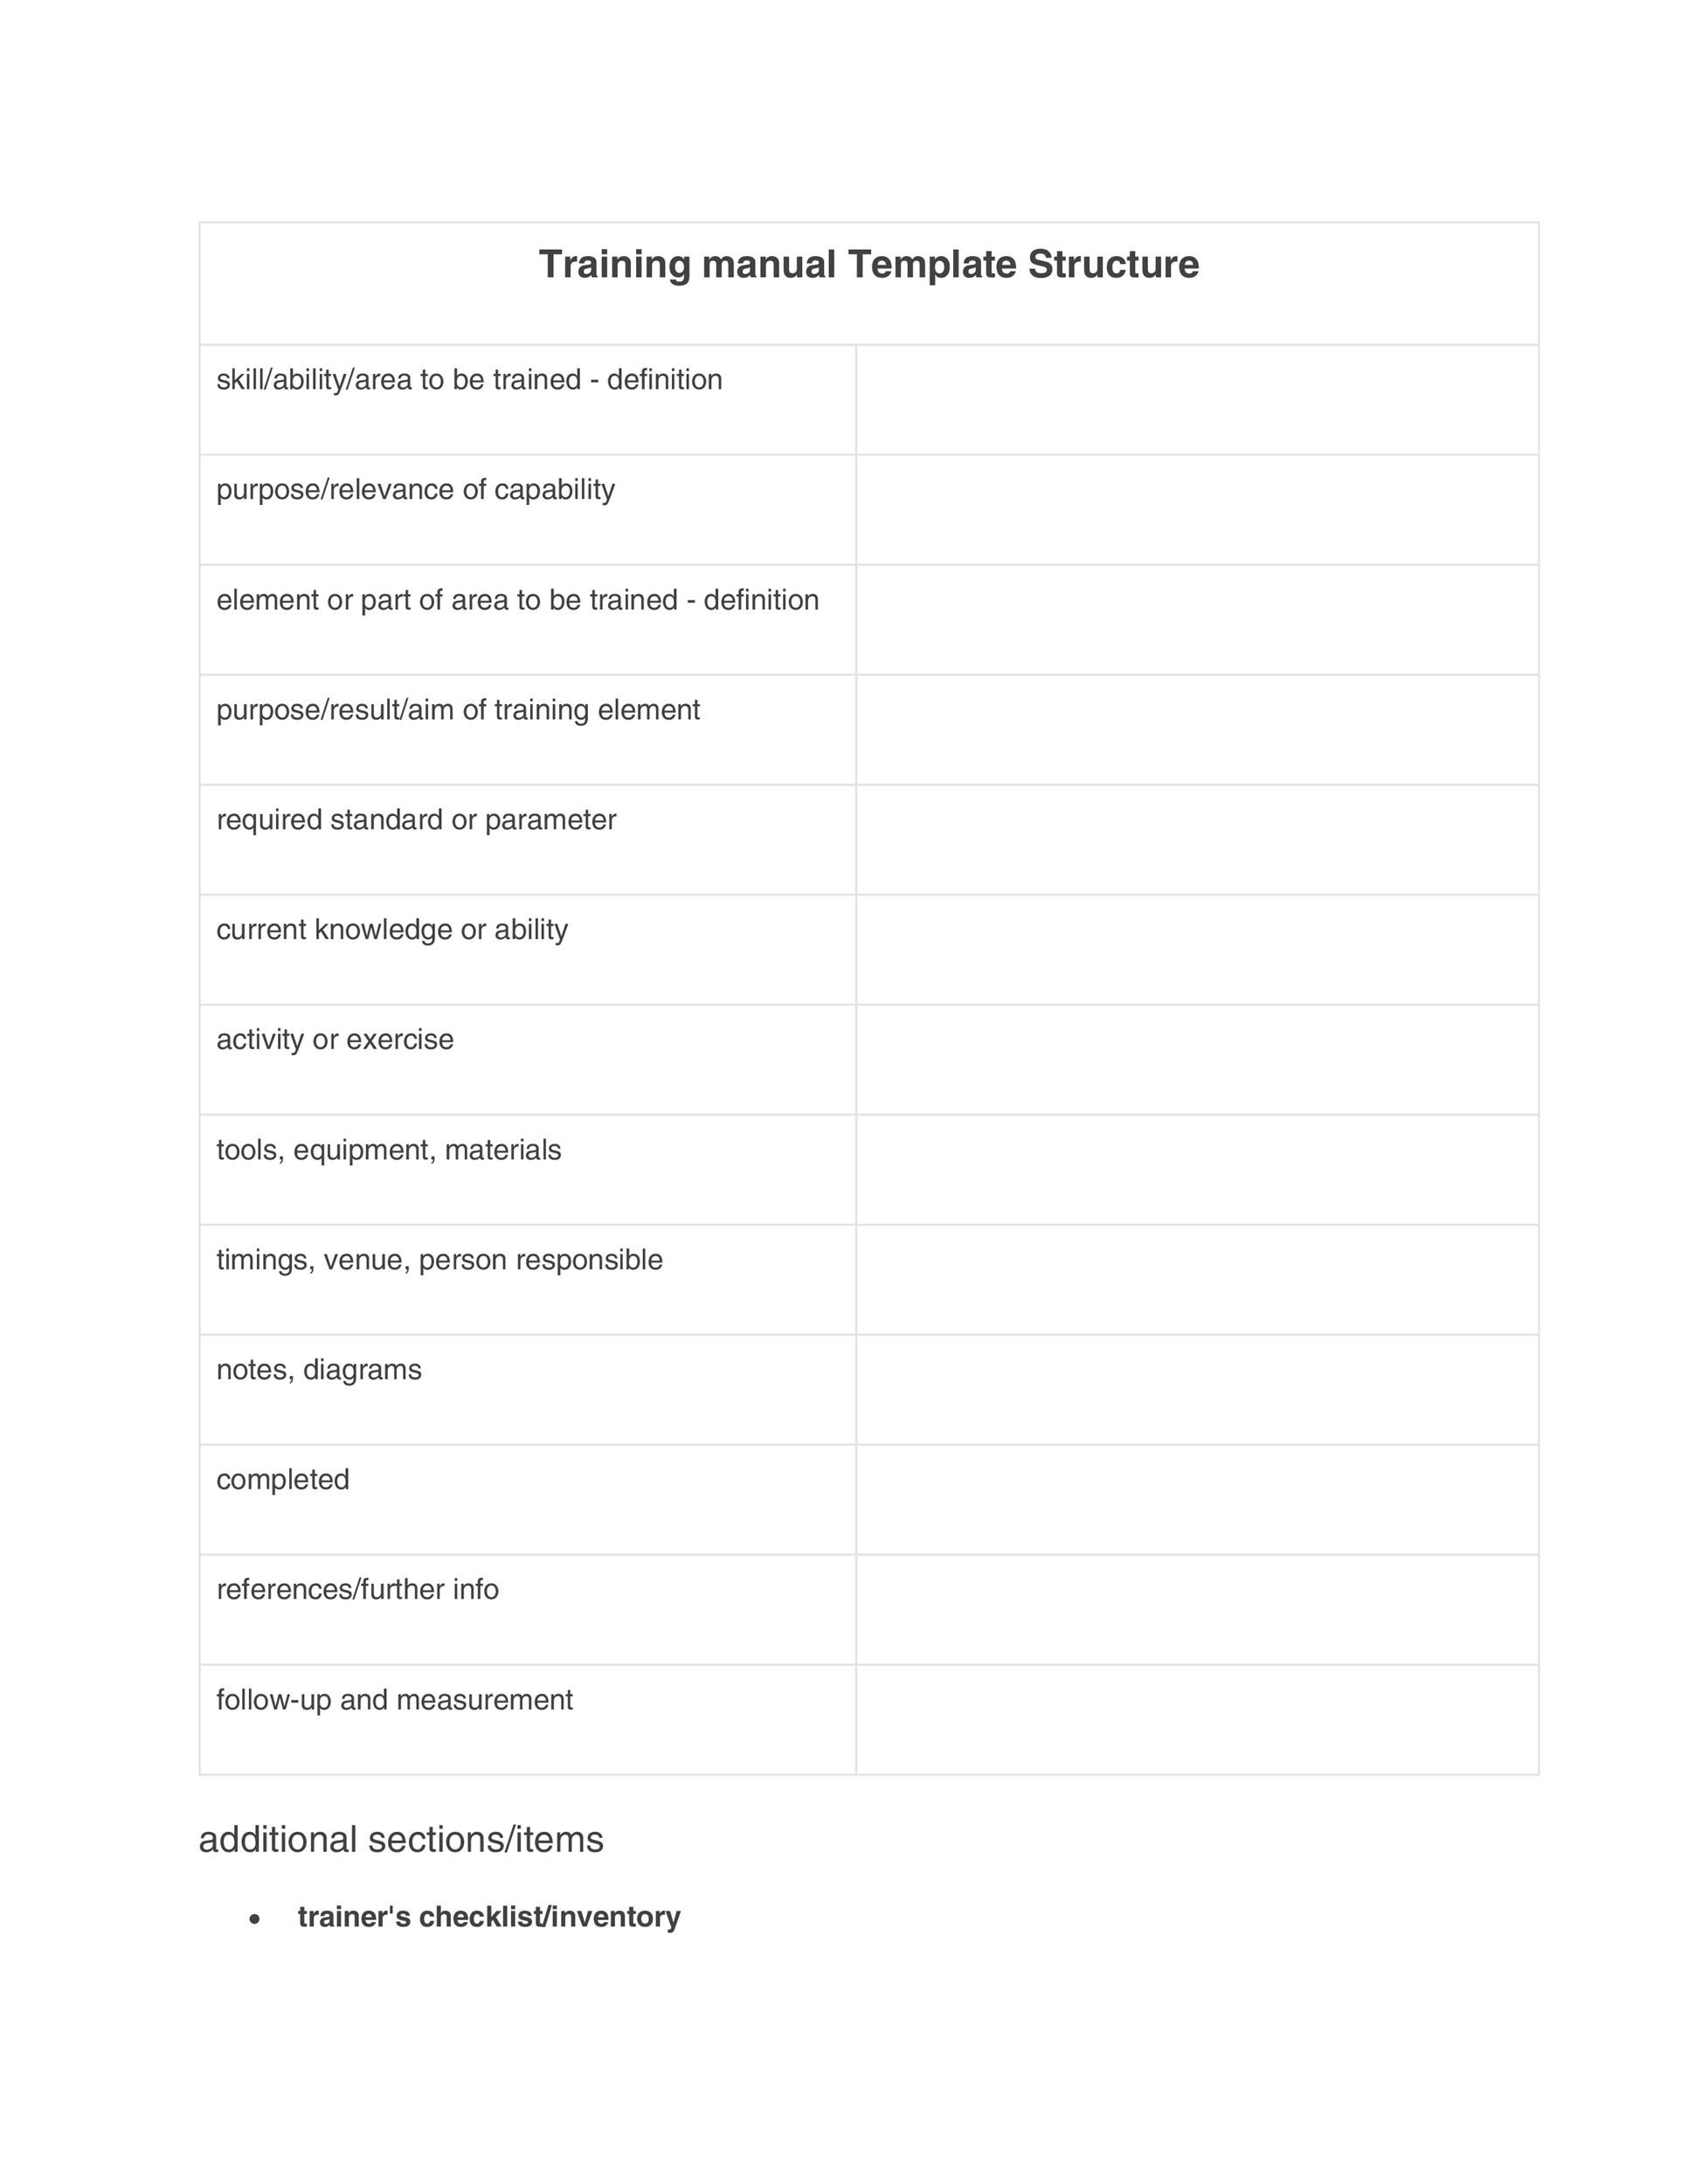 Training Manual Free Templates Examples In MS Word - Handbook template word